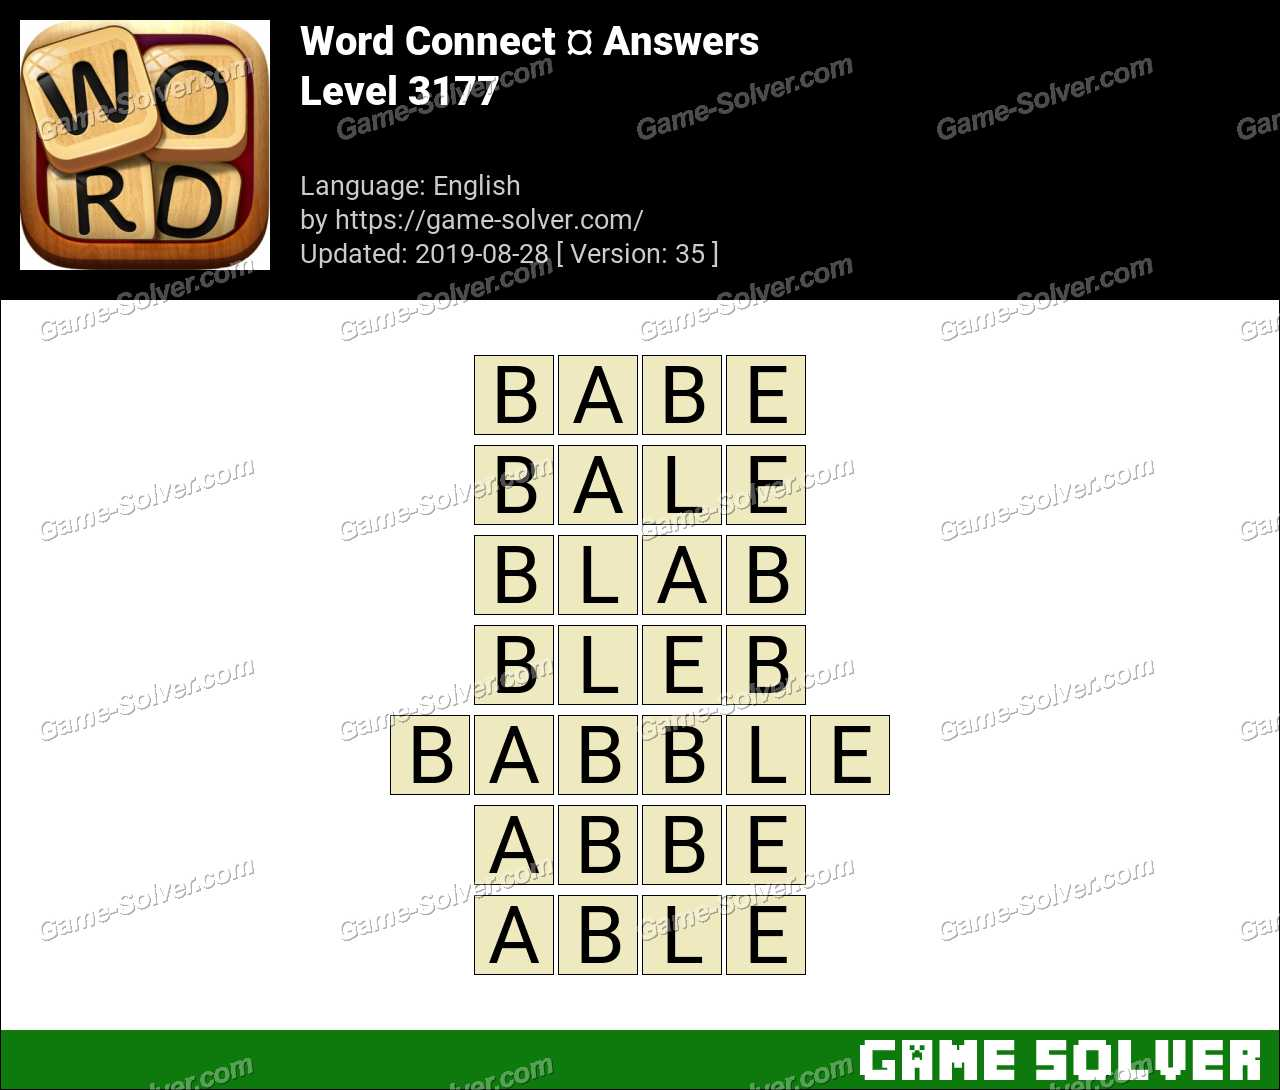 Word Connect Level 3177 Answers